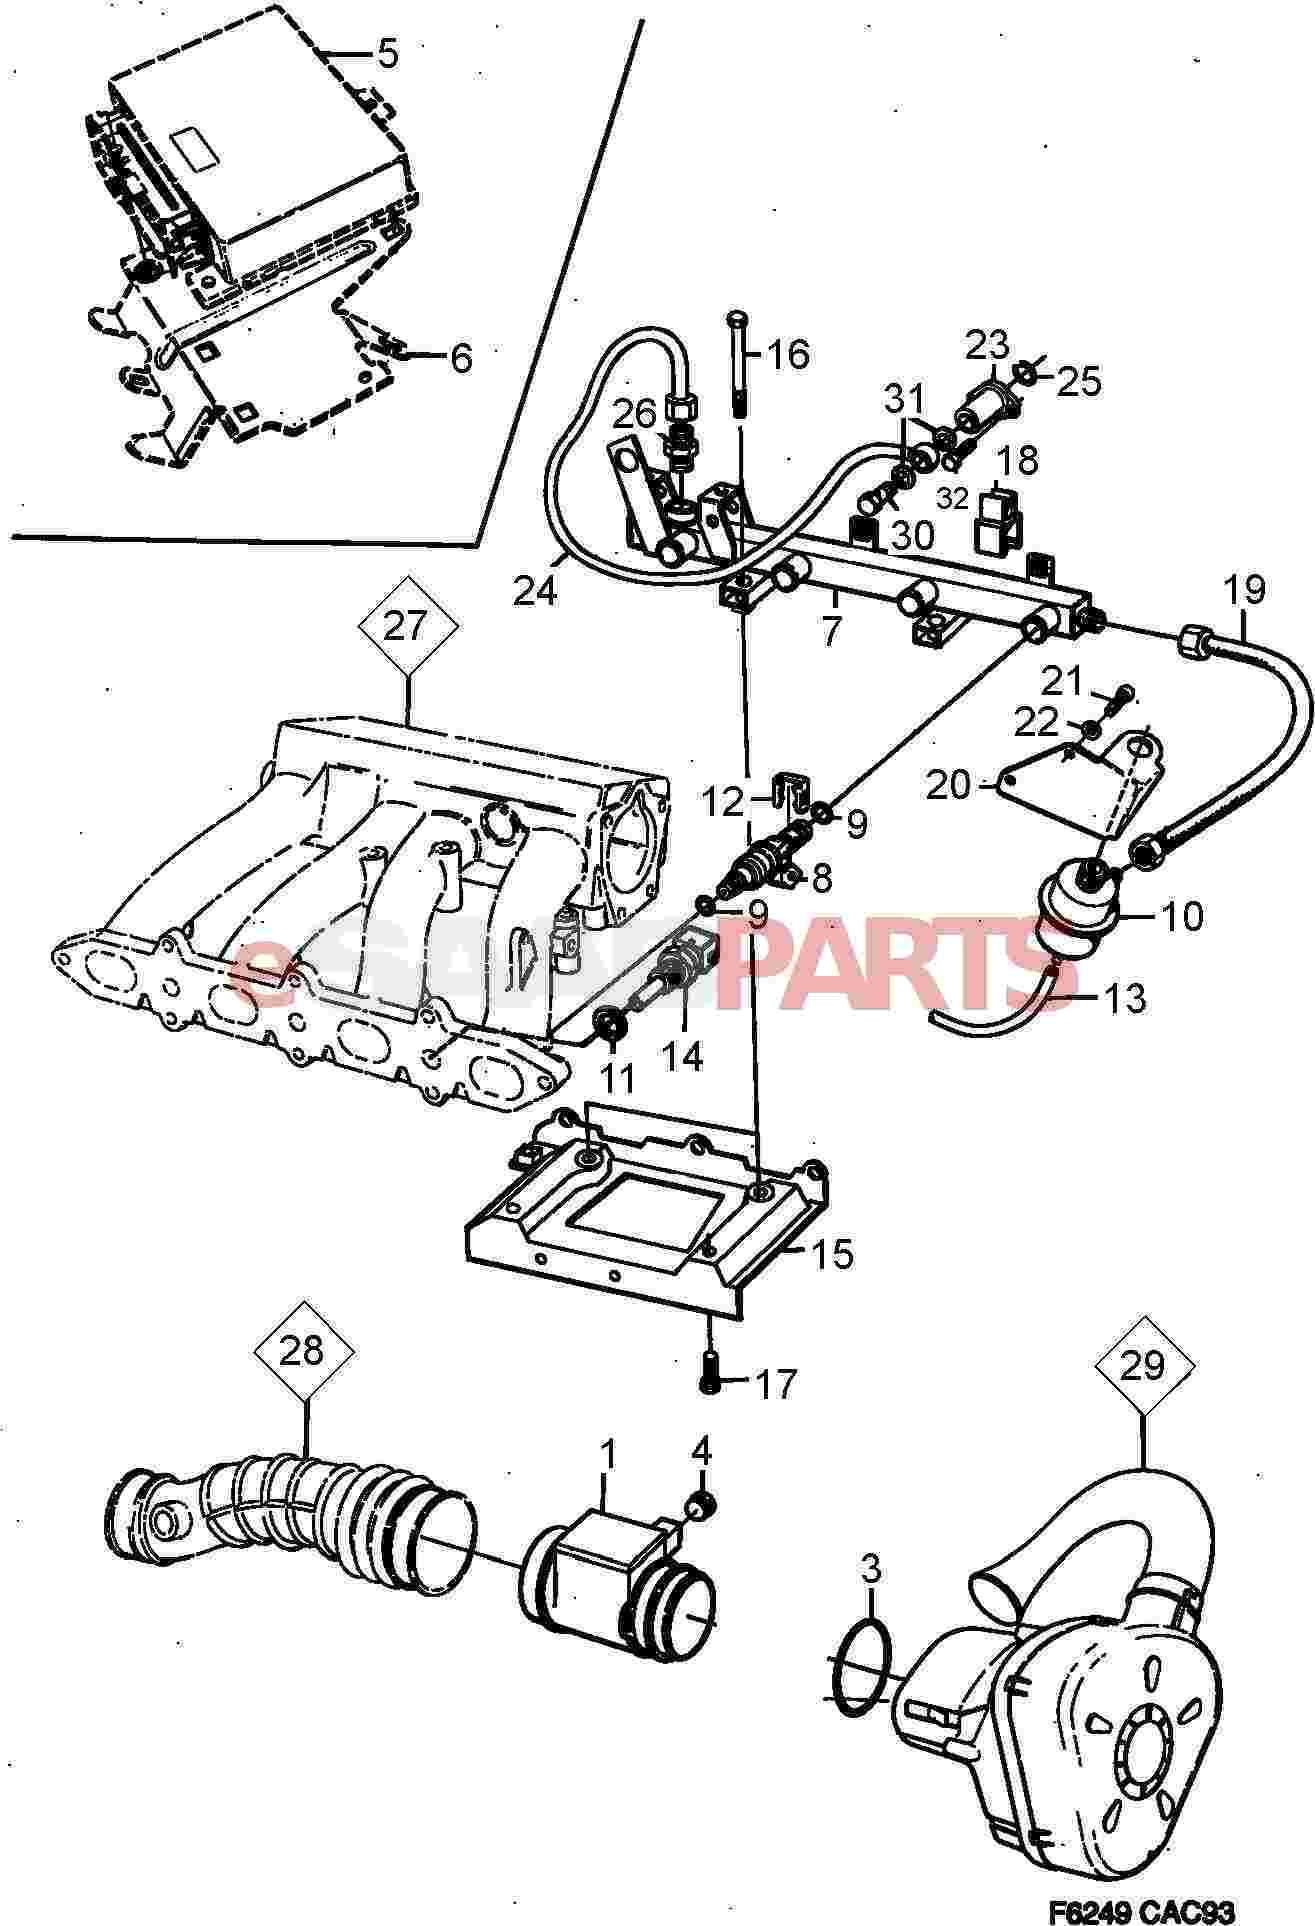 Starting Wiring Diagram For 2000 Buick Century. Buick